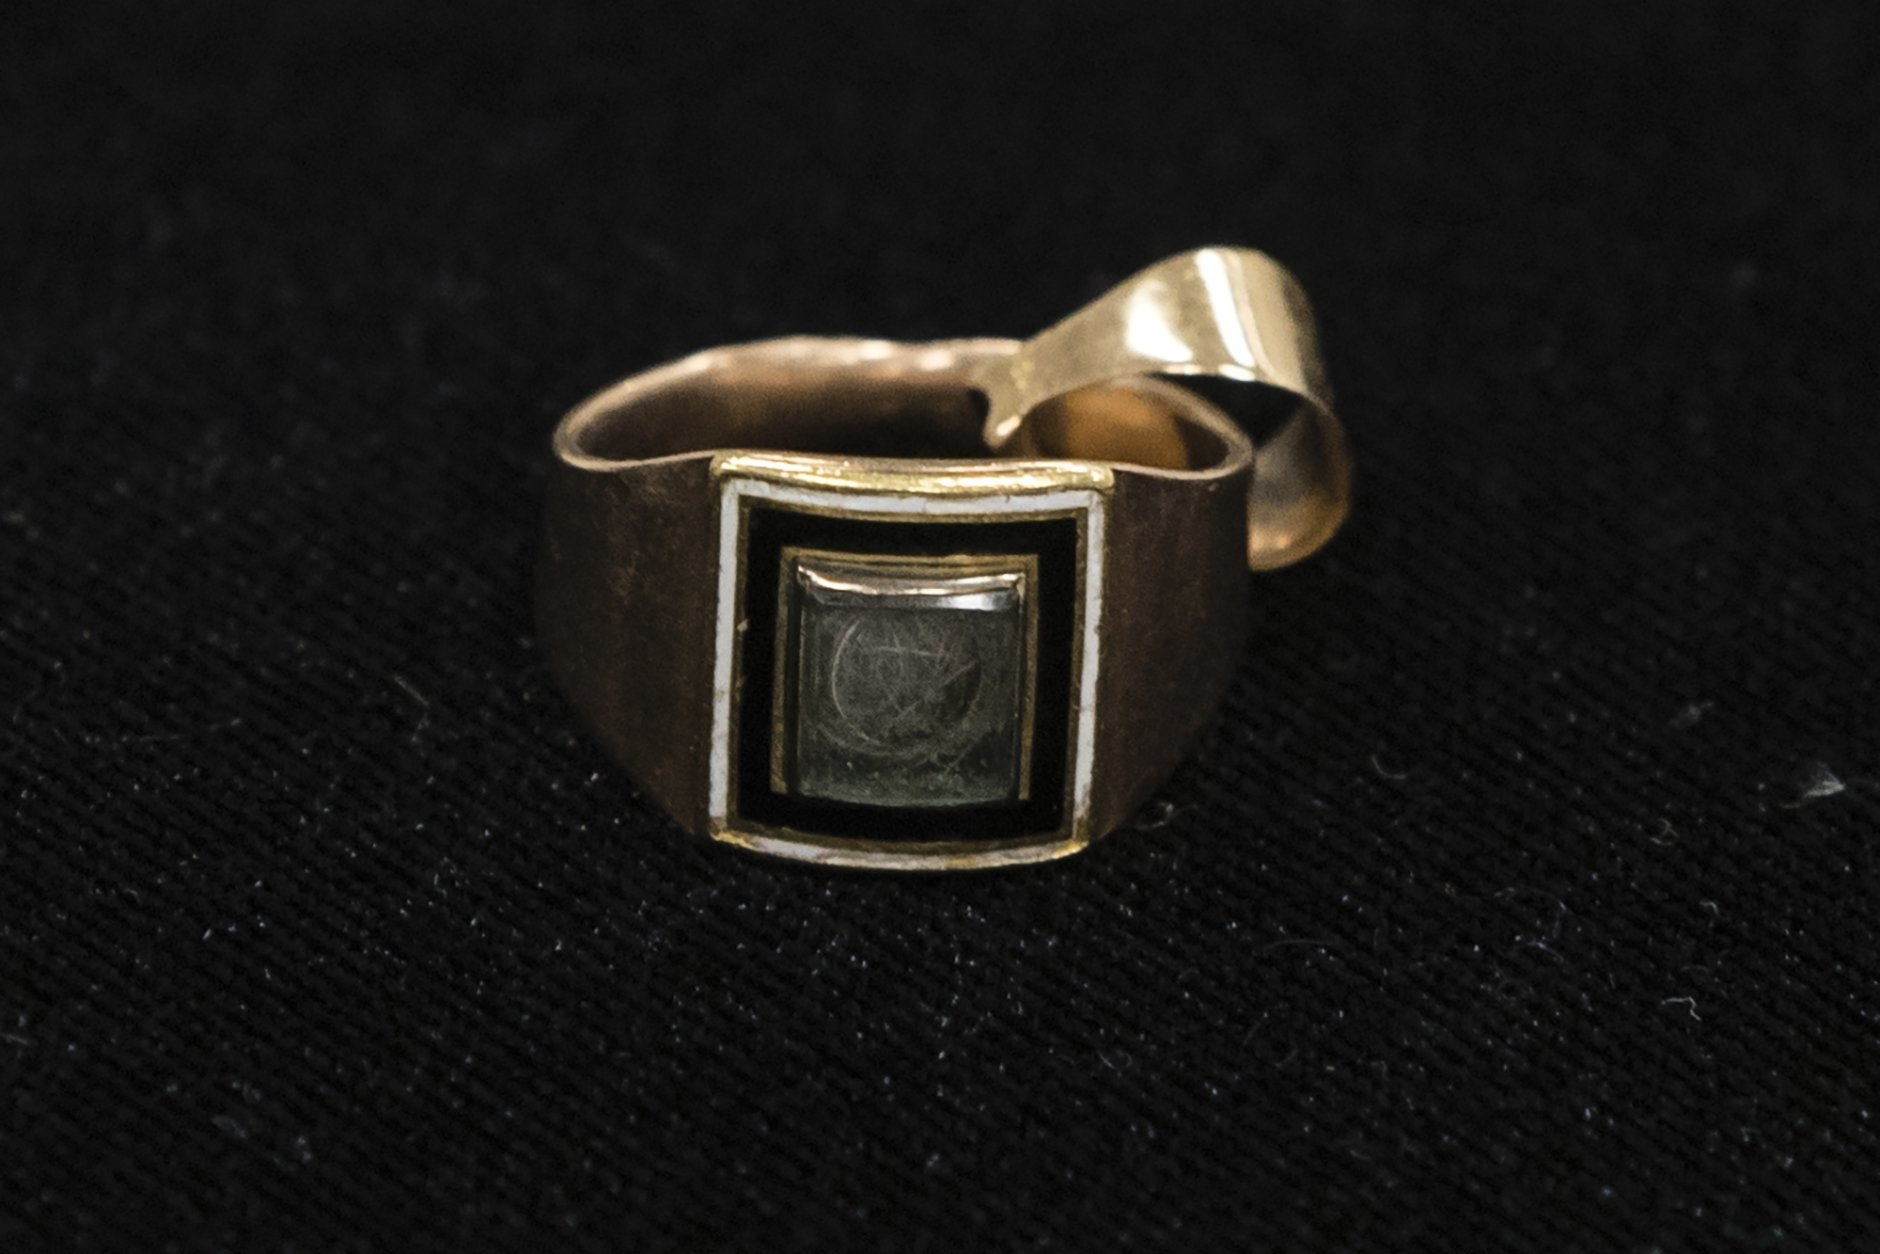 """Shown is Alexander Hamilton's window Elizabeth Hamilton's gold mourning ring with a piece of her late-husband's hair encased under the glass jewel, at the Museum of the American Revolution in Philadelphia, Monday, Nov. 12, 2018. This and other items loaned by the fifth great-grandson of Hamilton will be featured as part of the museum's """"Year of Hamilton."""" (AP Photo/Matt Rourke)"""